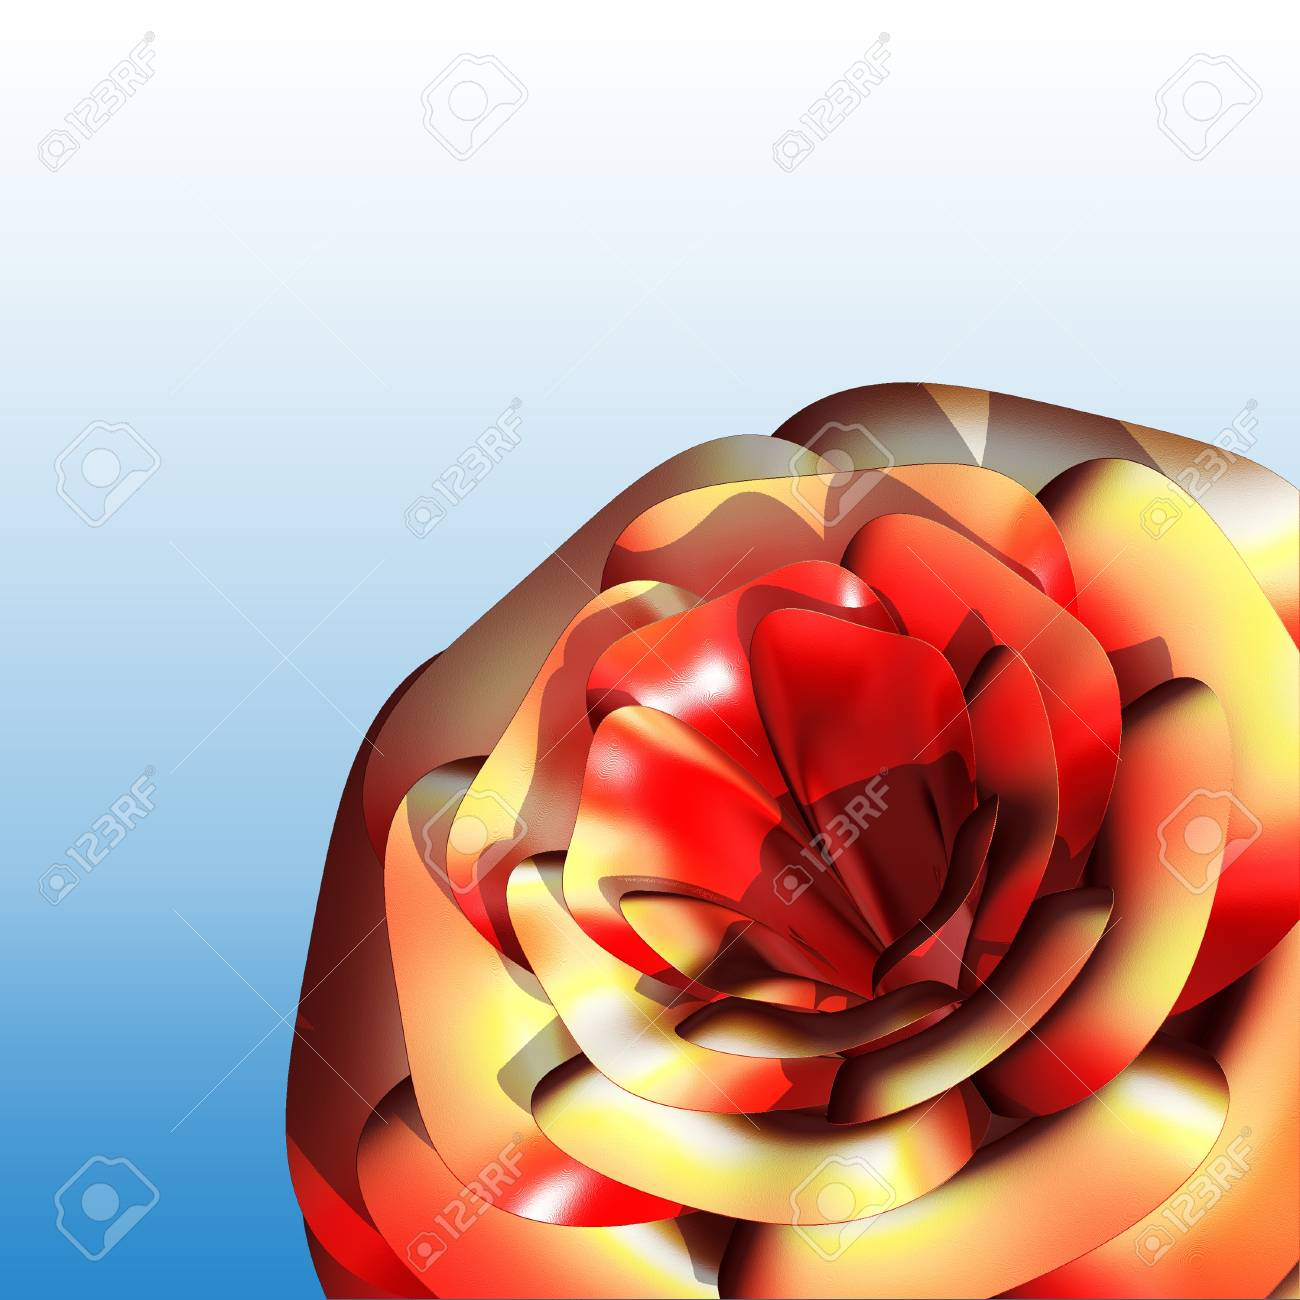 Celebratory background with a red rose close-up 3d Stock Photo - 11875978